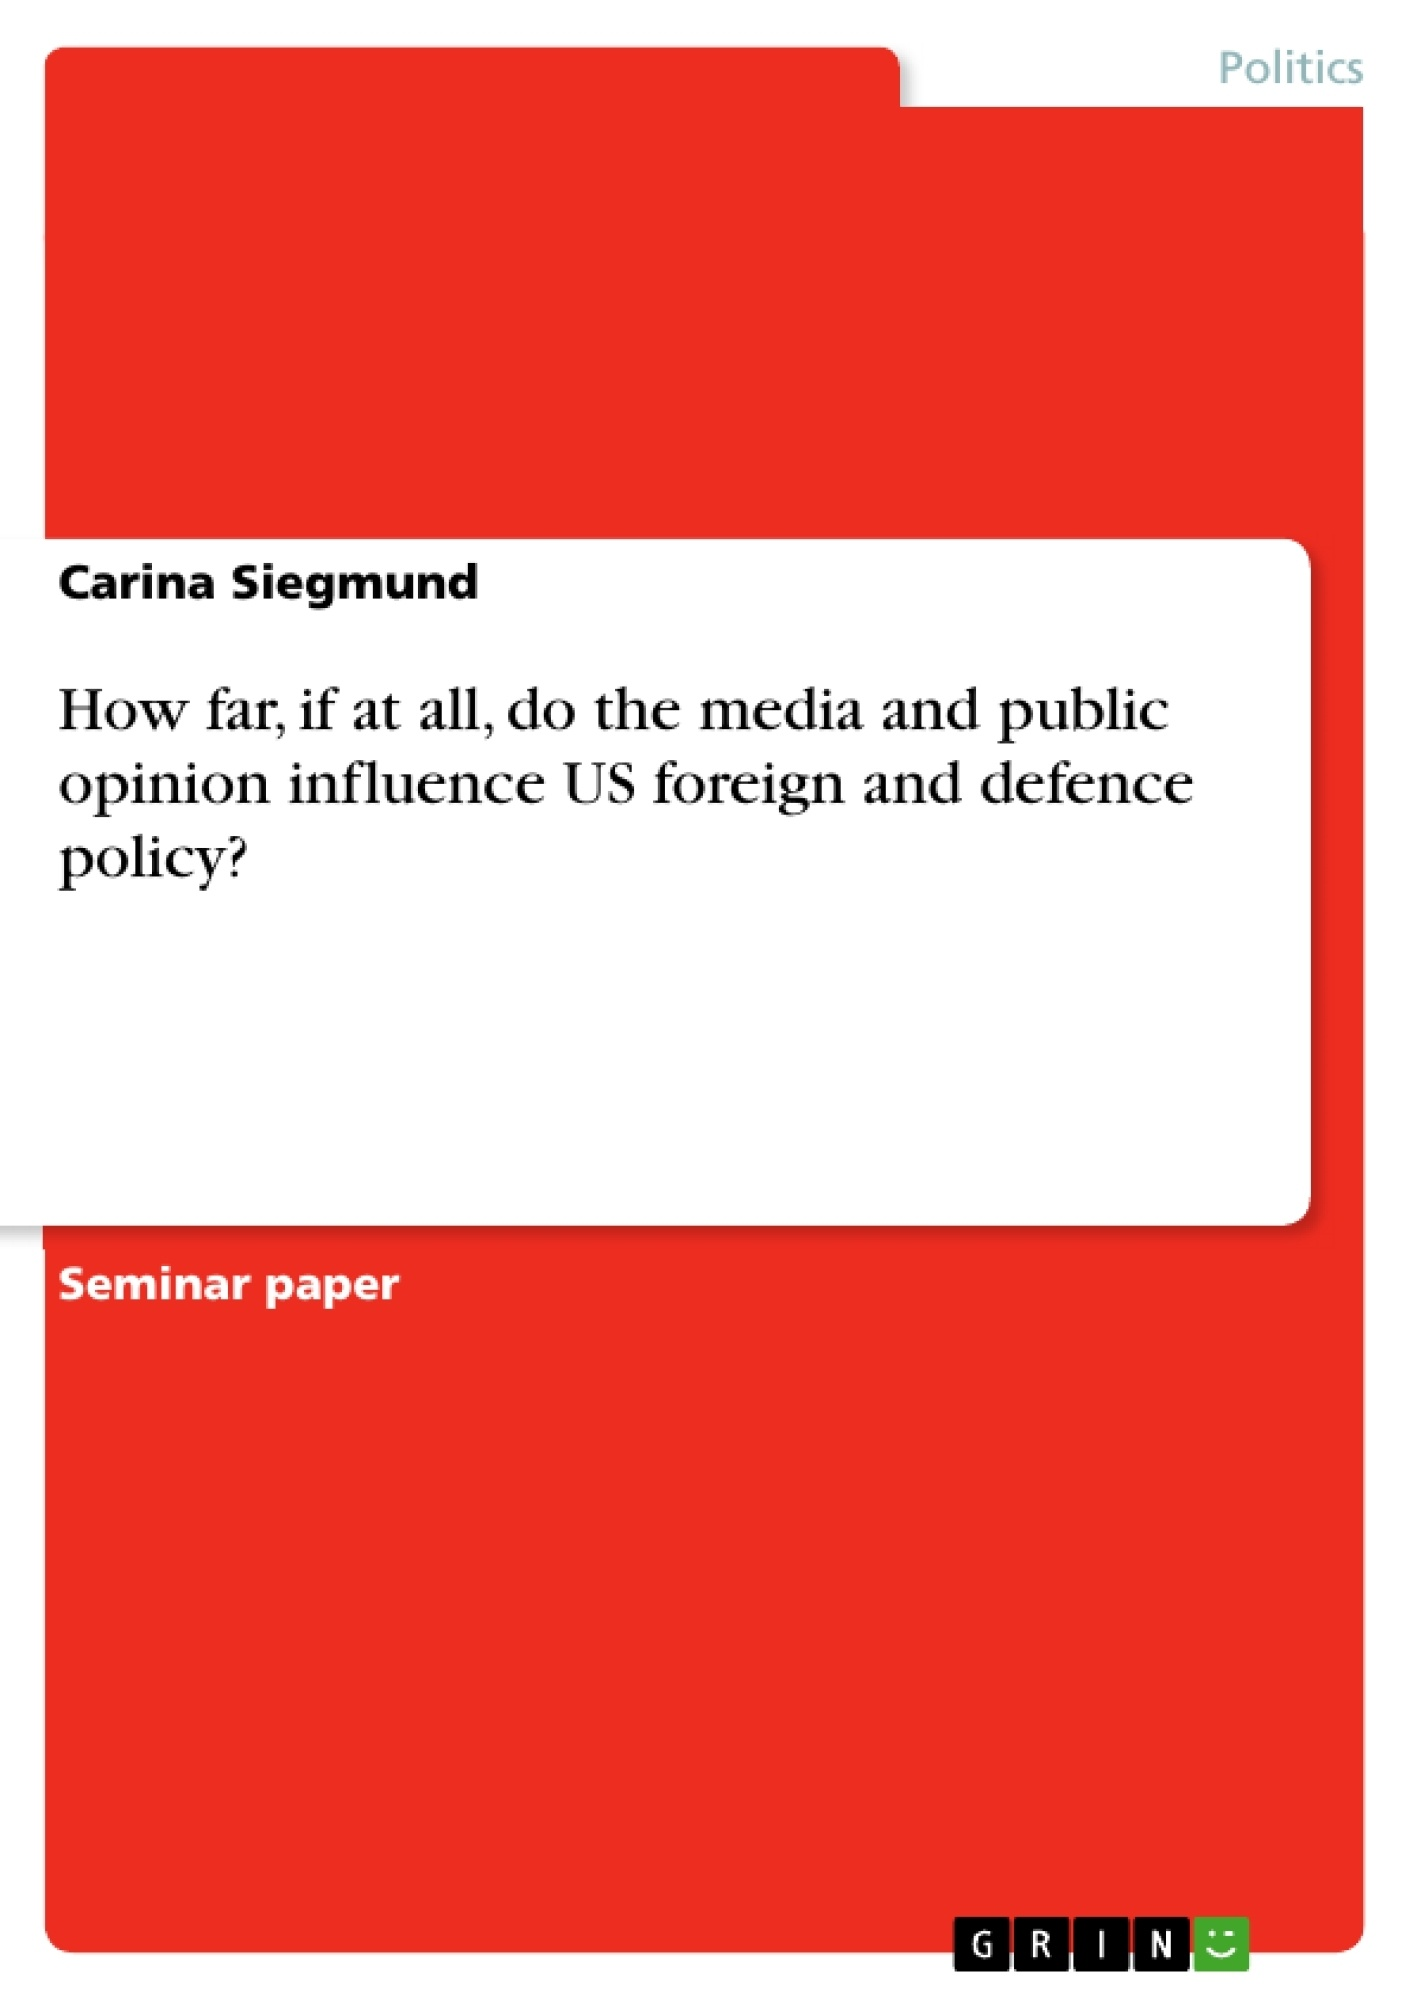 Title: How far, if at all, do the media and public opinion influence US foreign and defence policy?